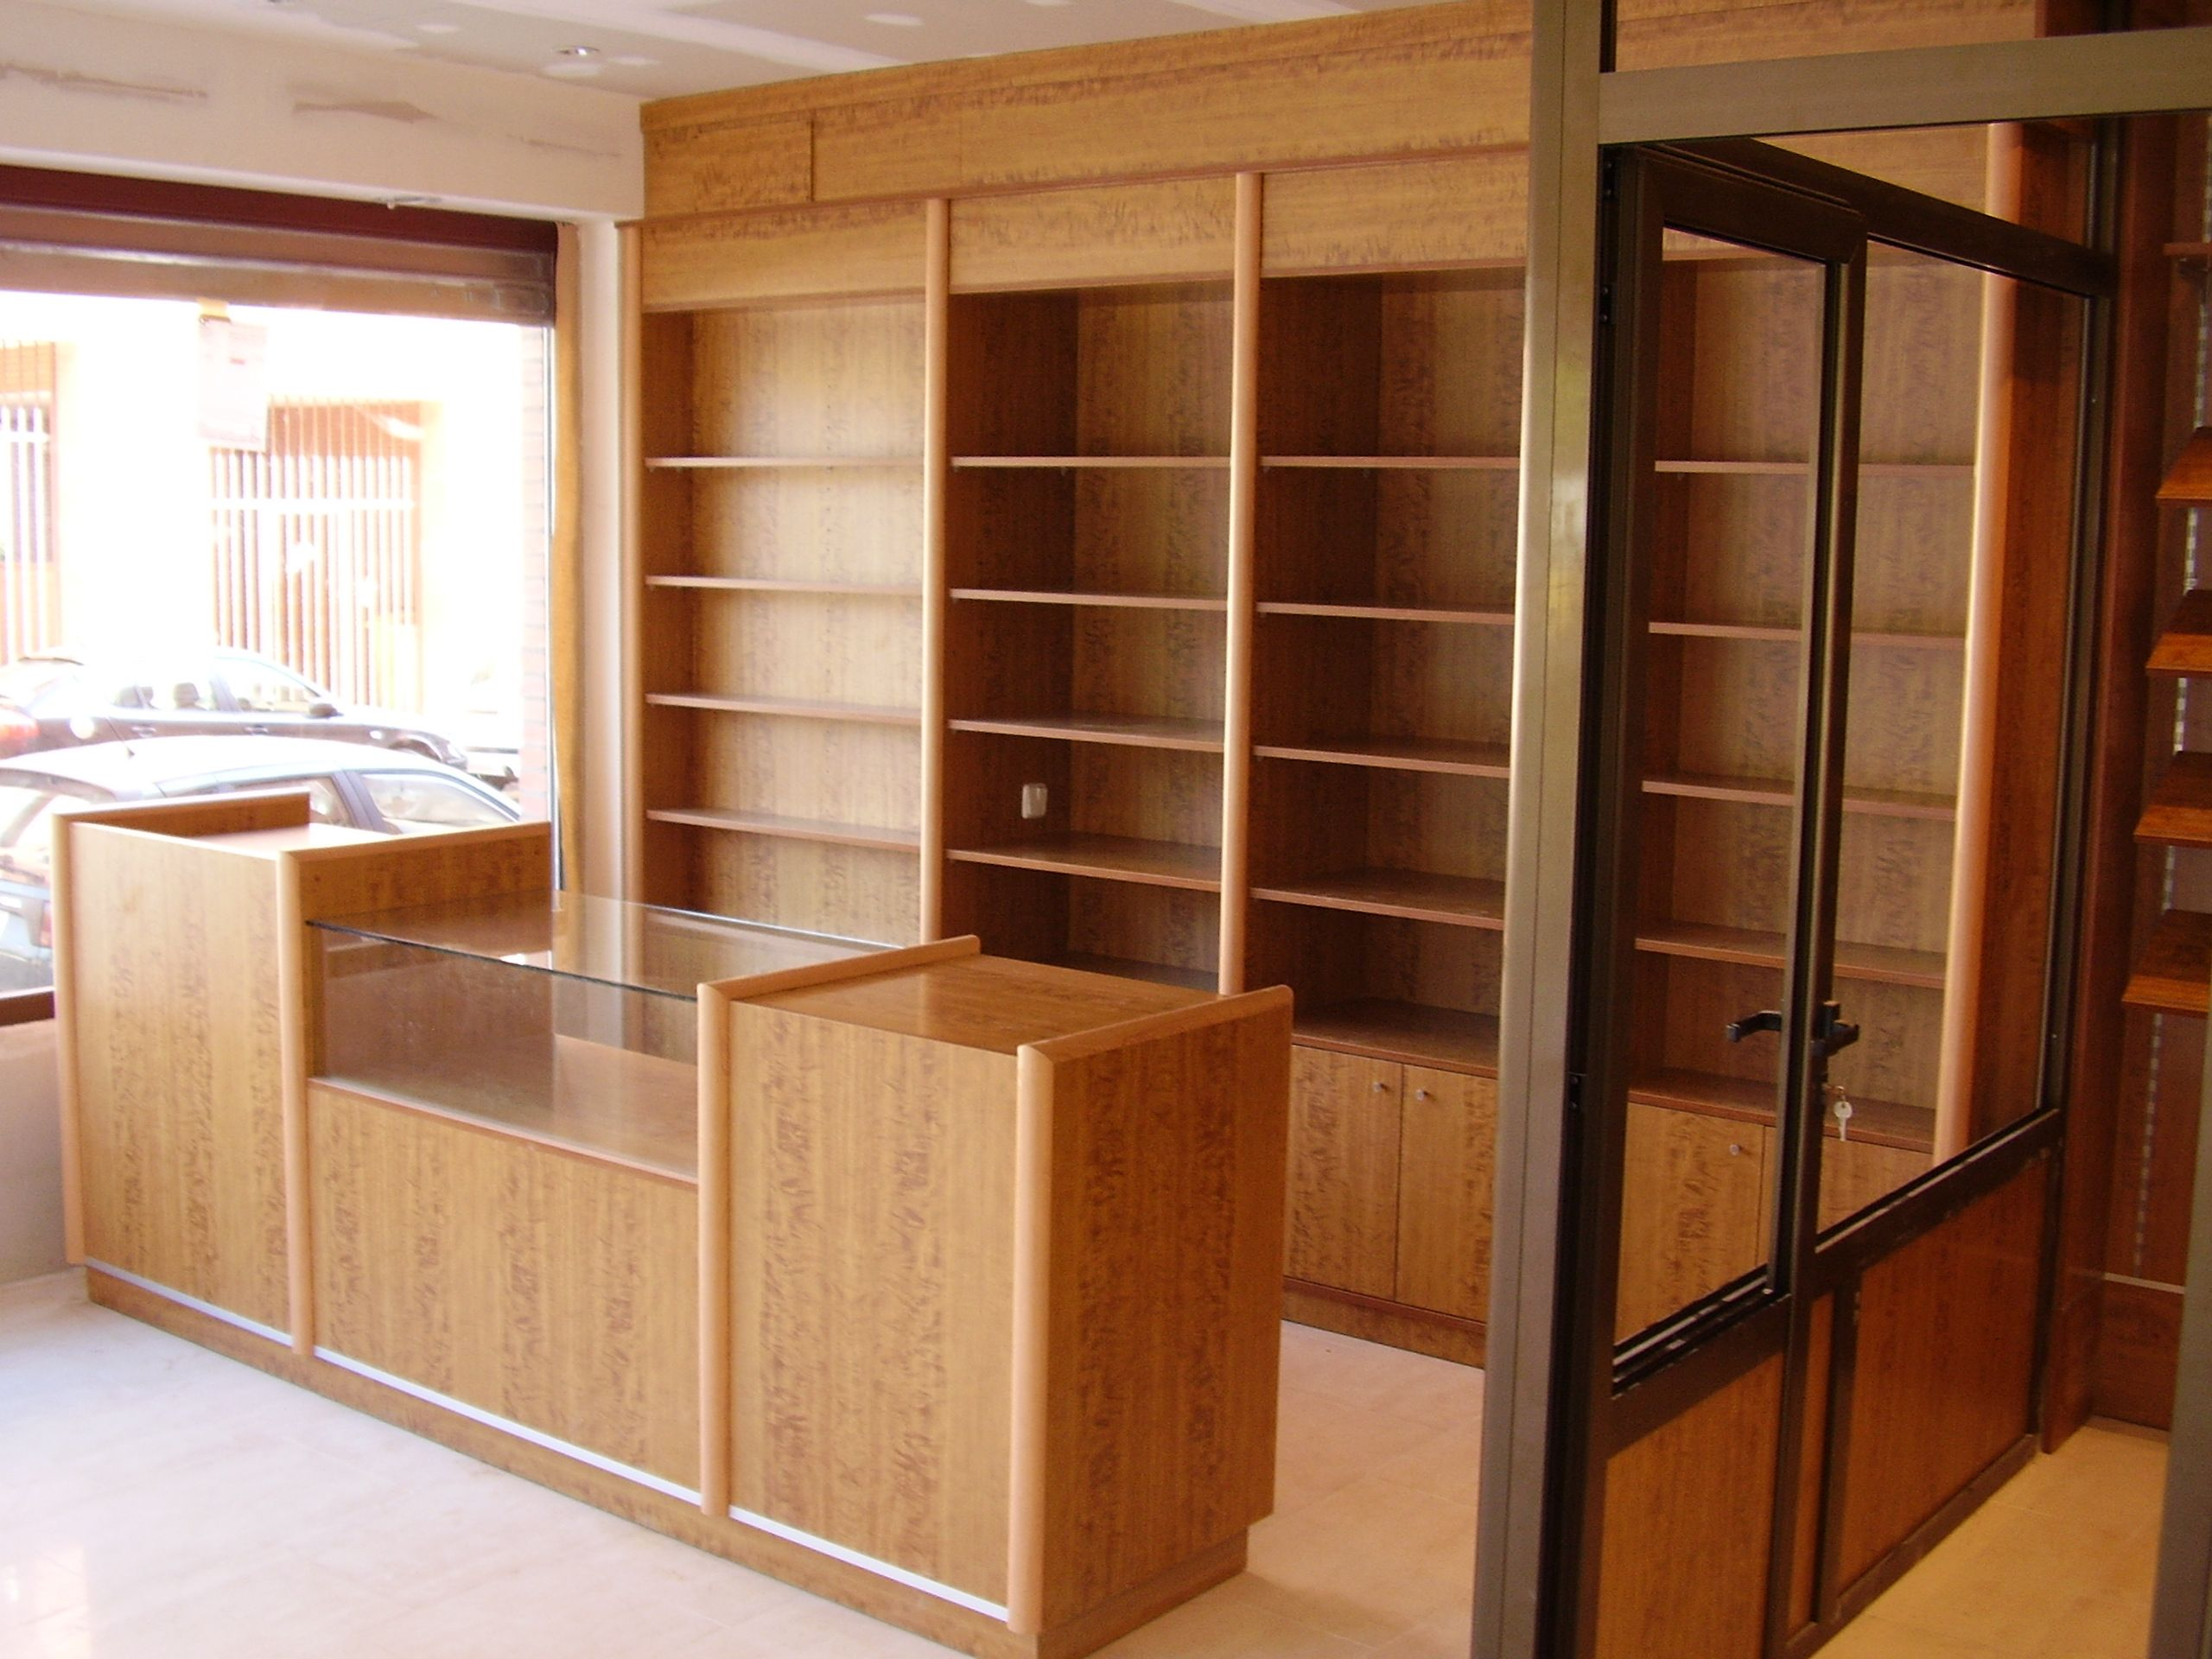 Mobiliario para comercios muebles de madera y estanter as for Muebles y decoracion beltran